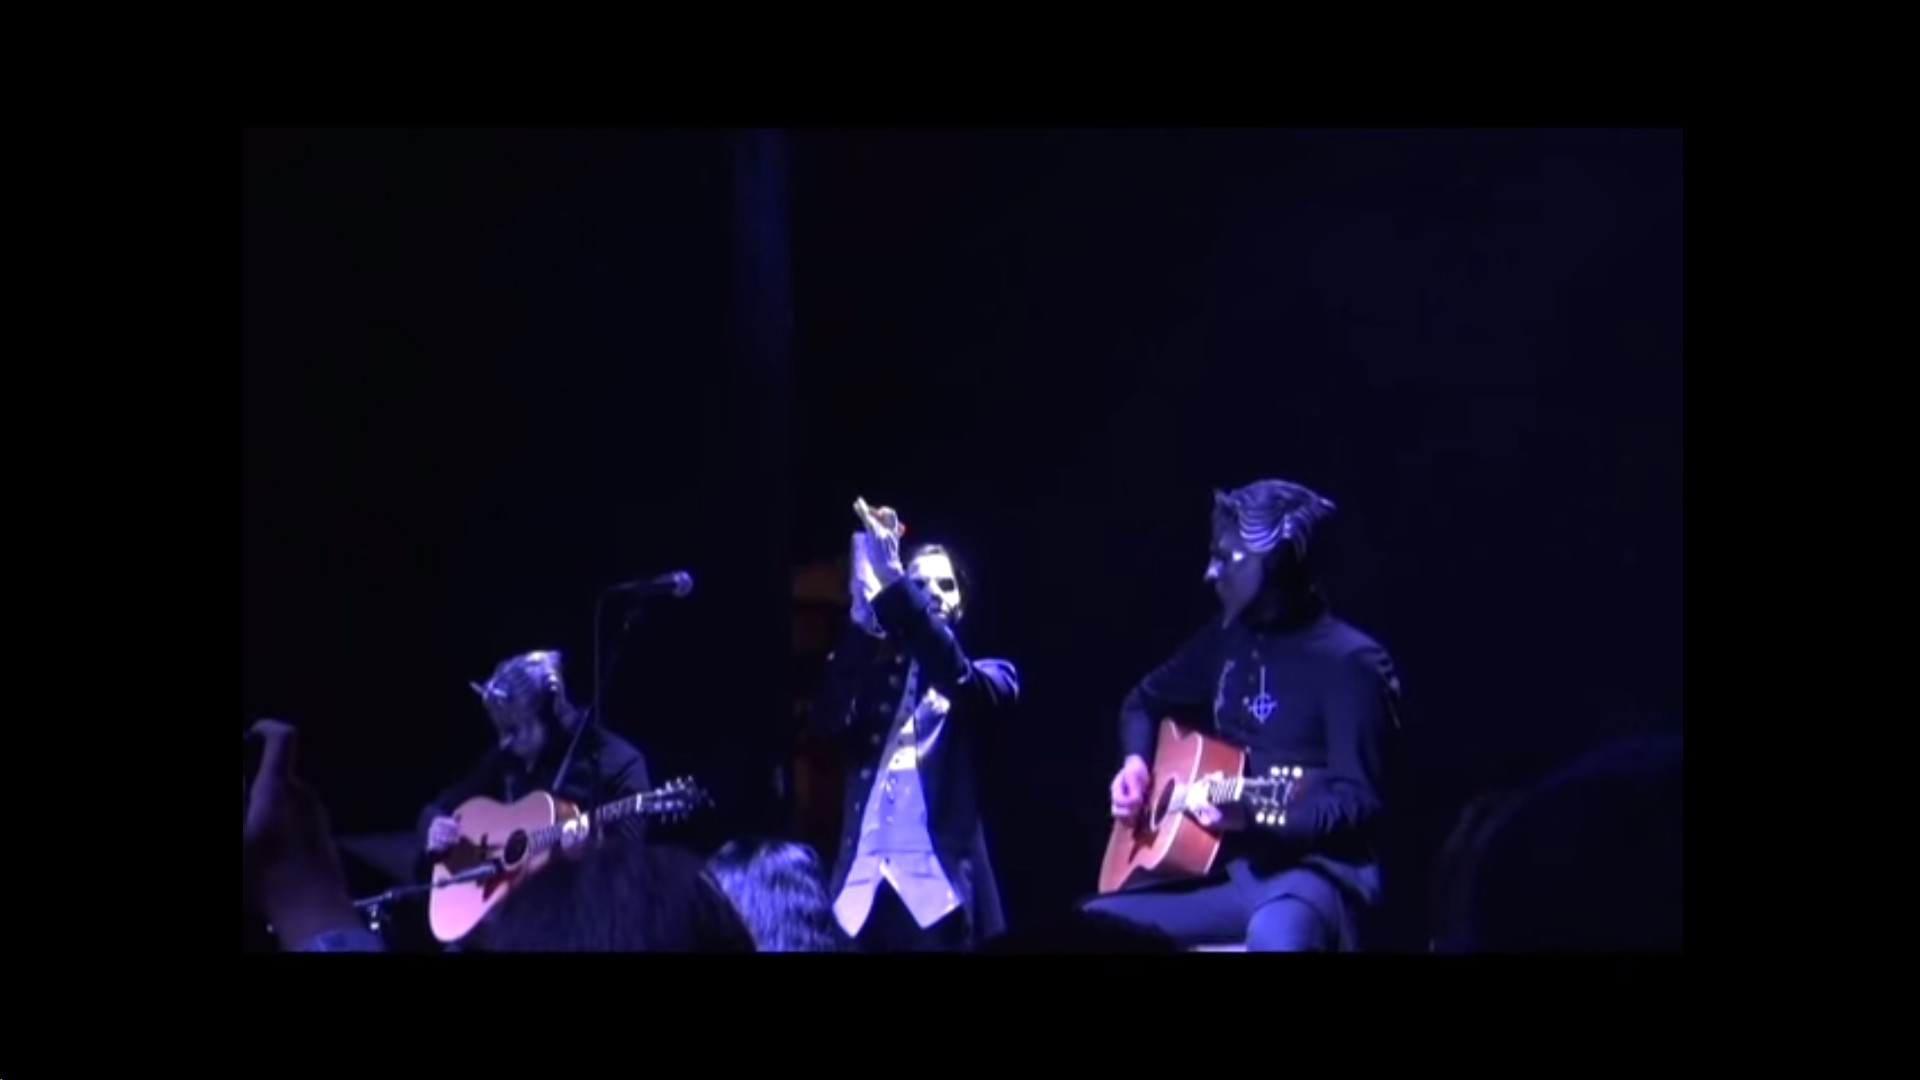 Live Video Of Ghost's Unholy/Unplugged Tour In New York